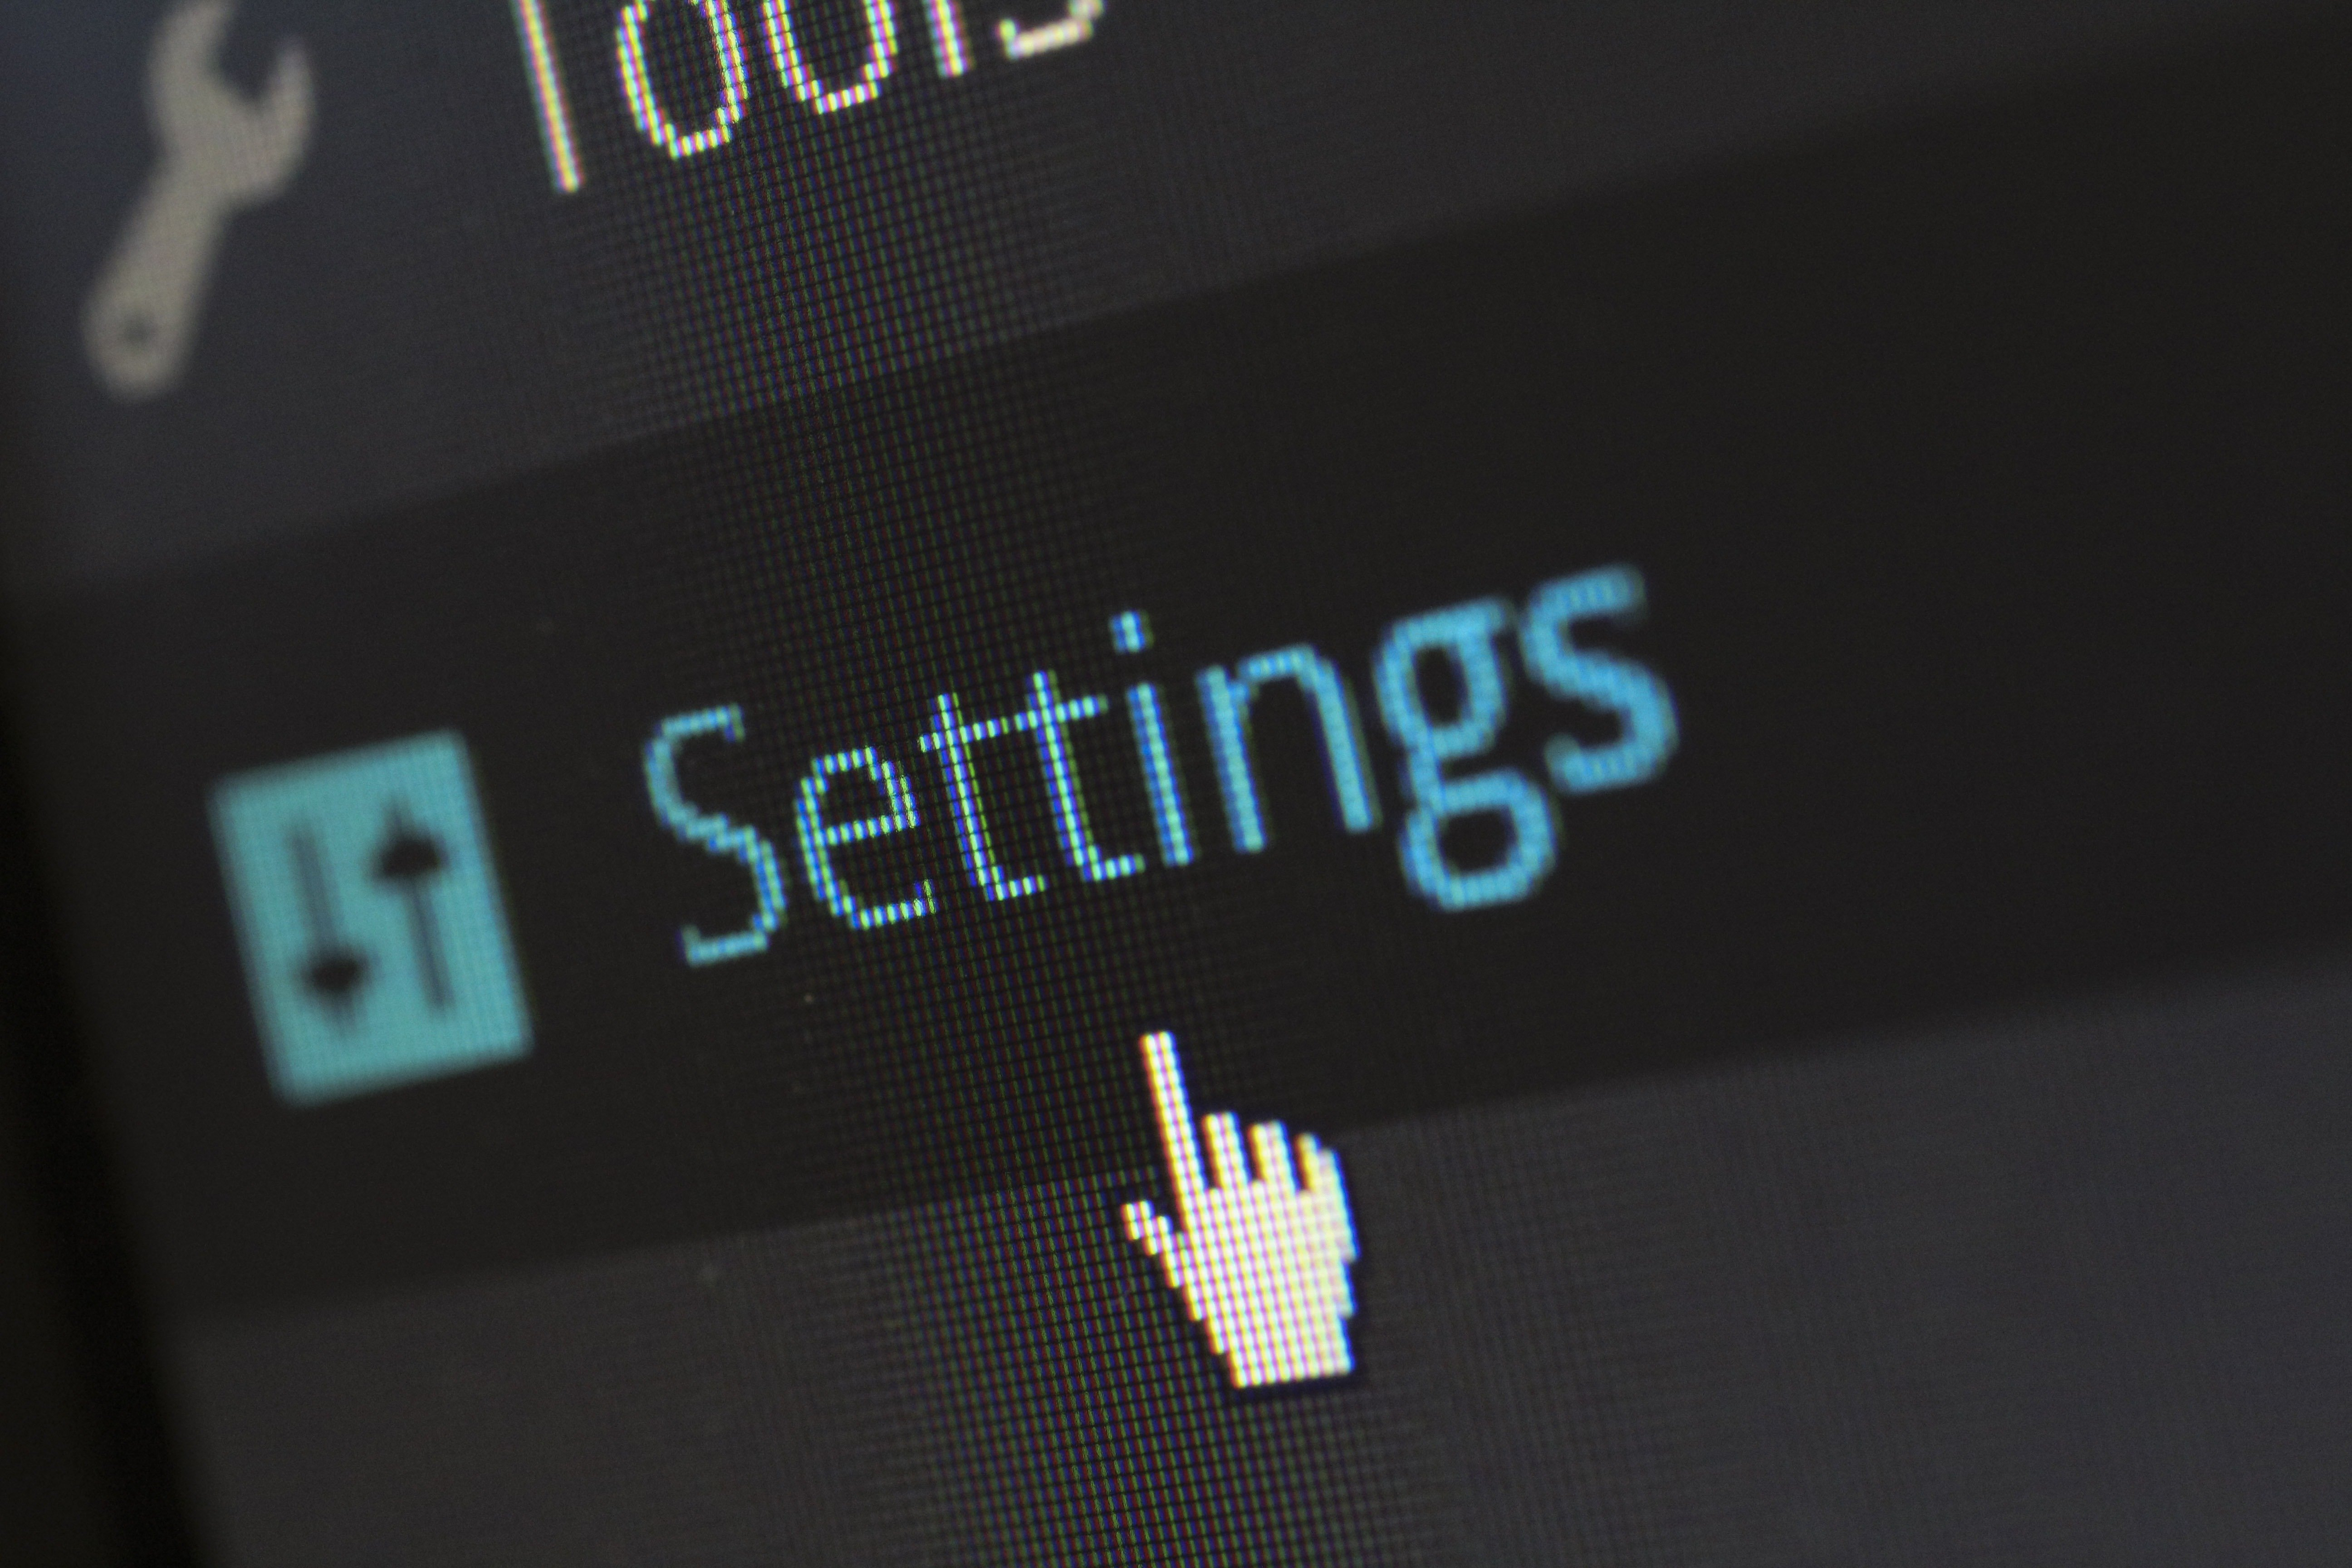 Website settings to increase security